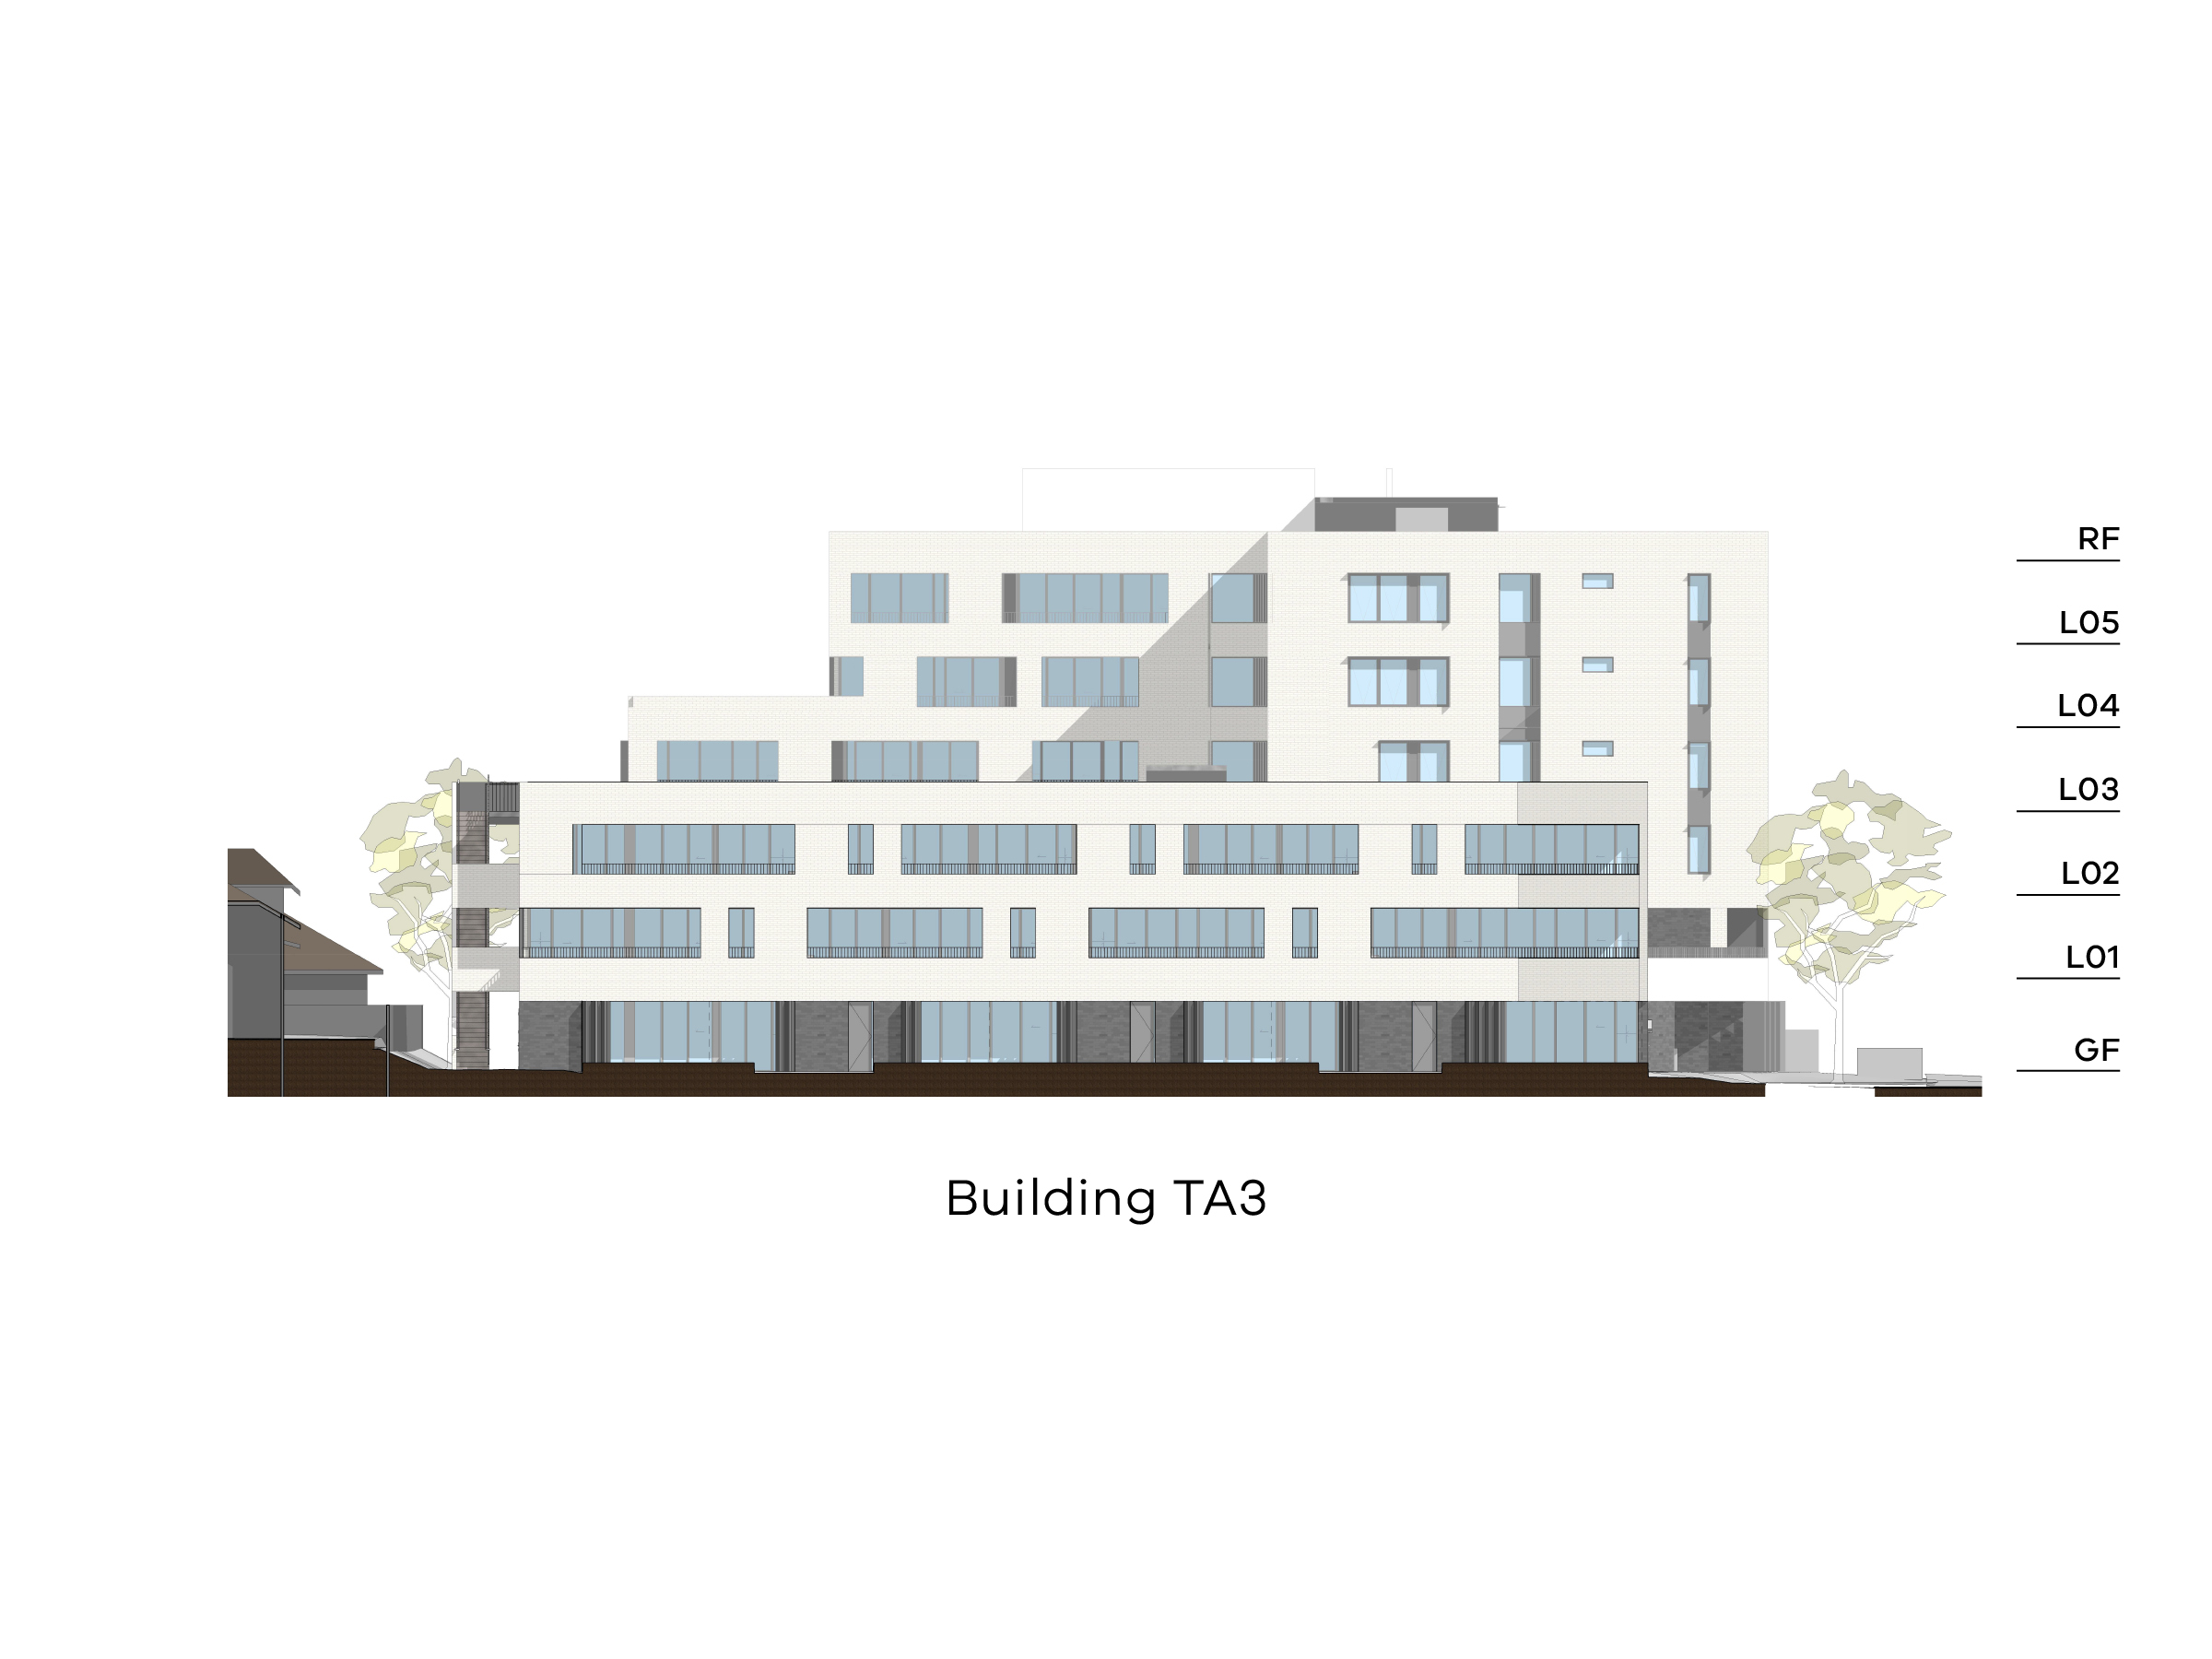 Diagram showing the height of building TA3 as seen from the on-site park looking south. Building TA3 has different heights, with a ground floor, level 1-2 and a flat roof at the front. The back of the building has a ground floor, level 1-3 and a flat roof on the eastern side and a ground floor, level 1-5 and a flat roof on the western side.